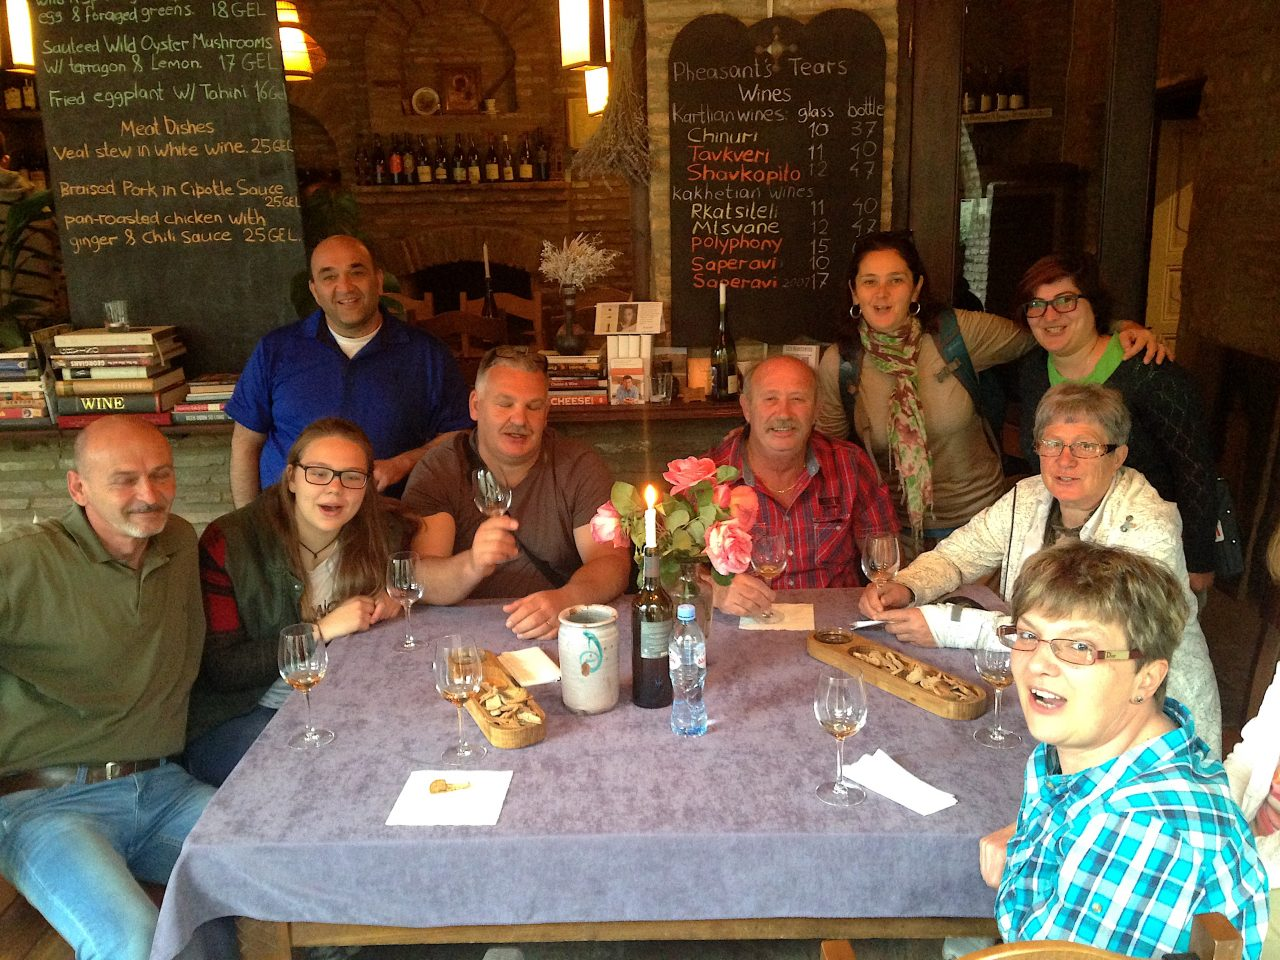 With the owner and some guests at Pheasant's Tears Winery